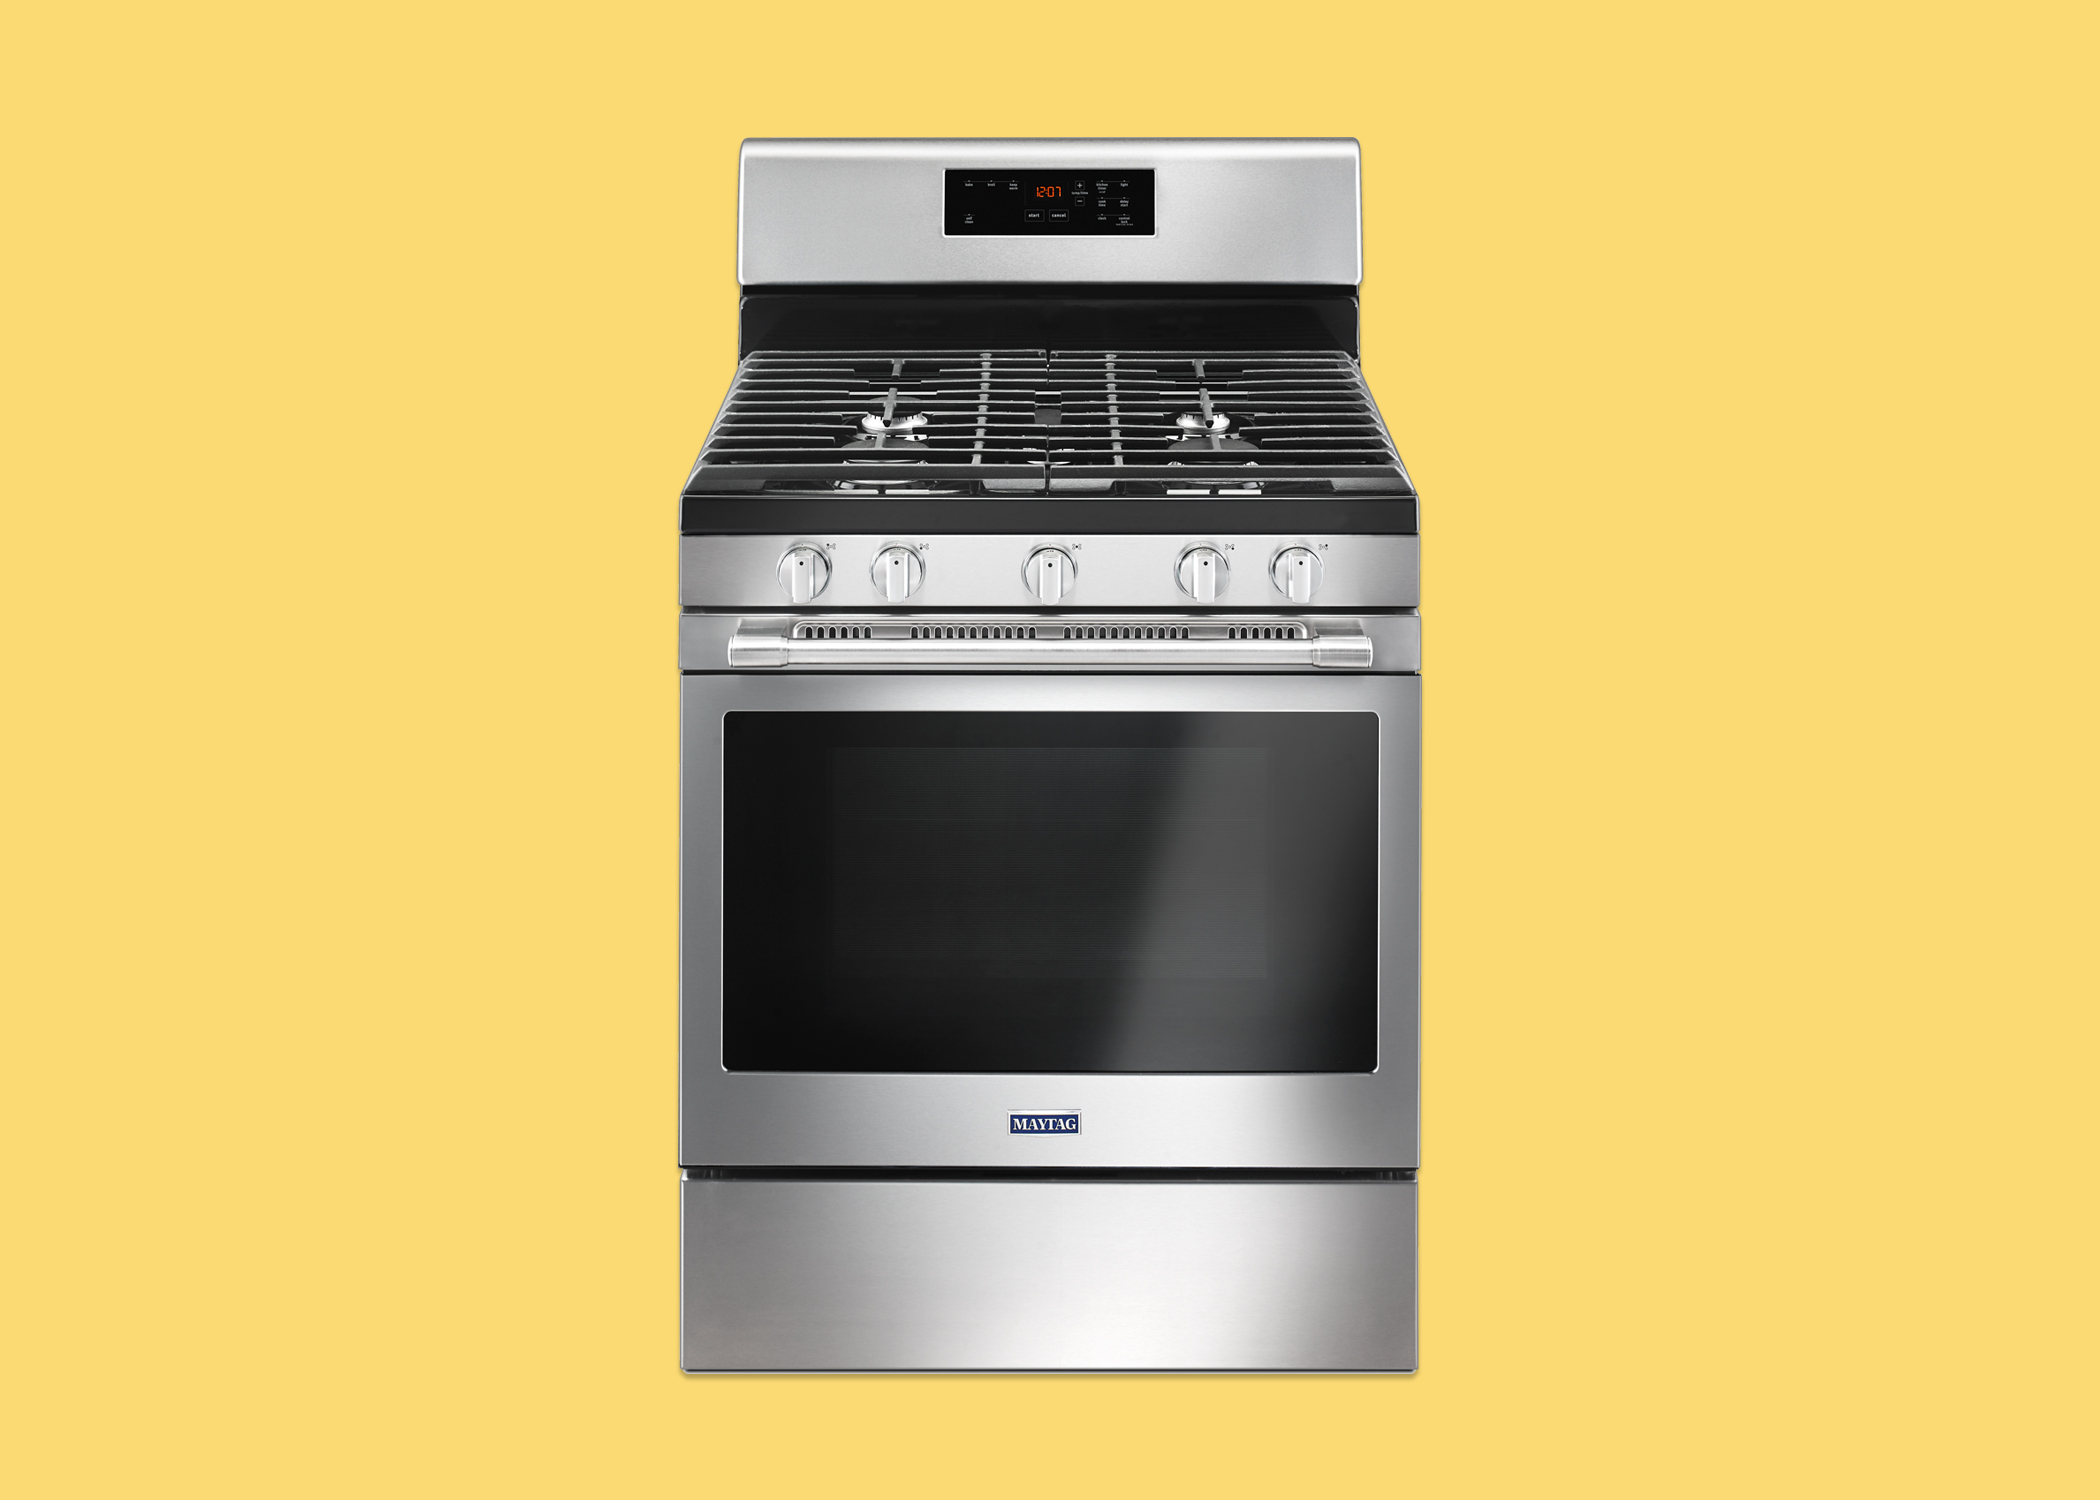 170503-maytag-oven-stove